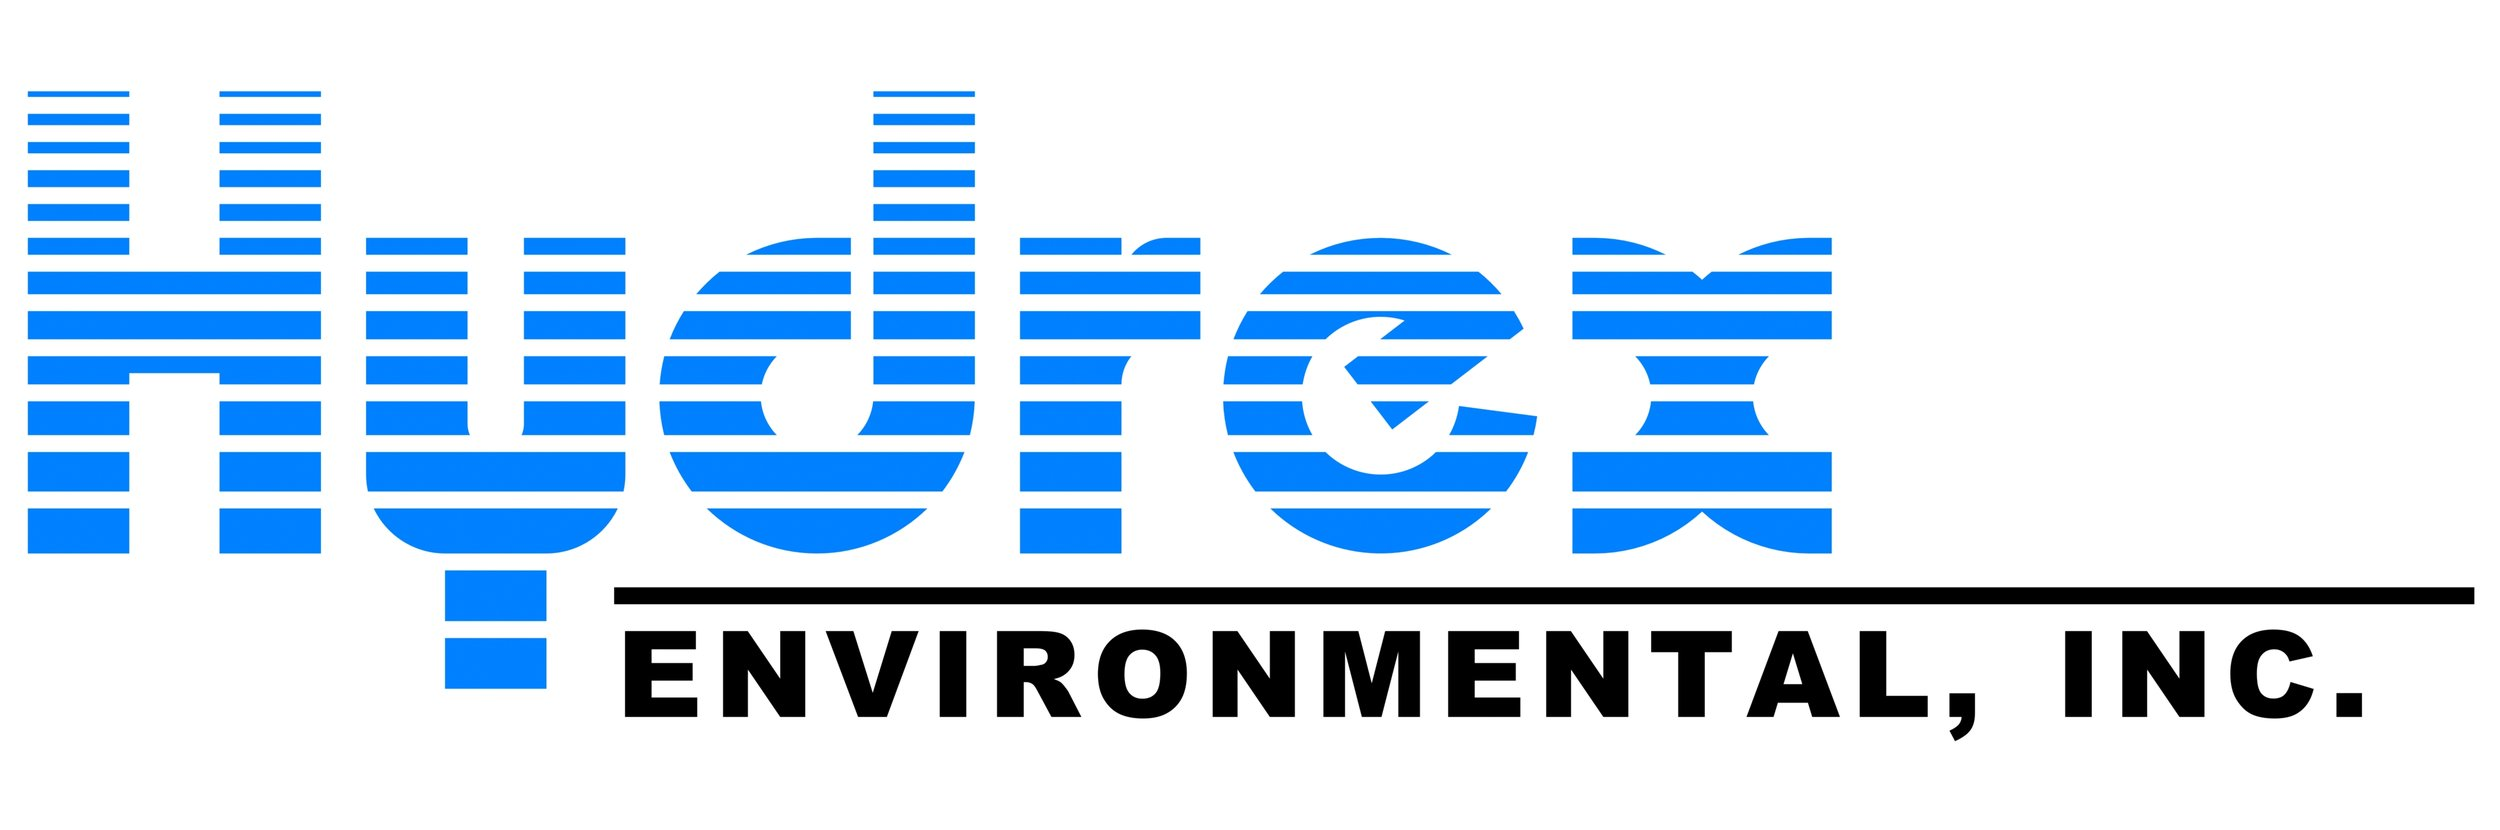 Hydrex environmental logo.jpeg